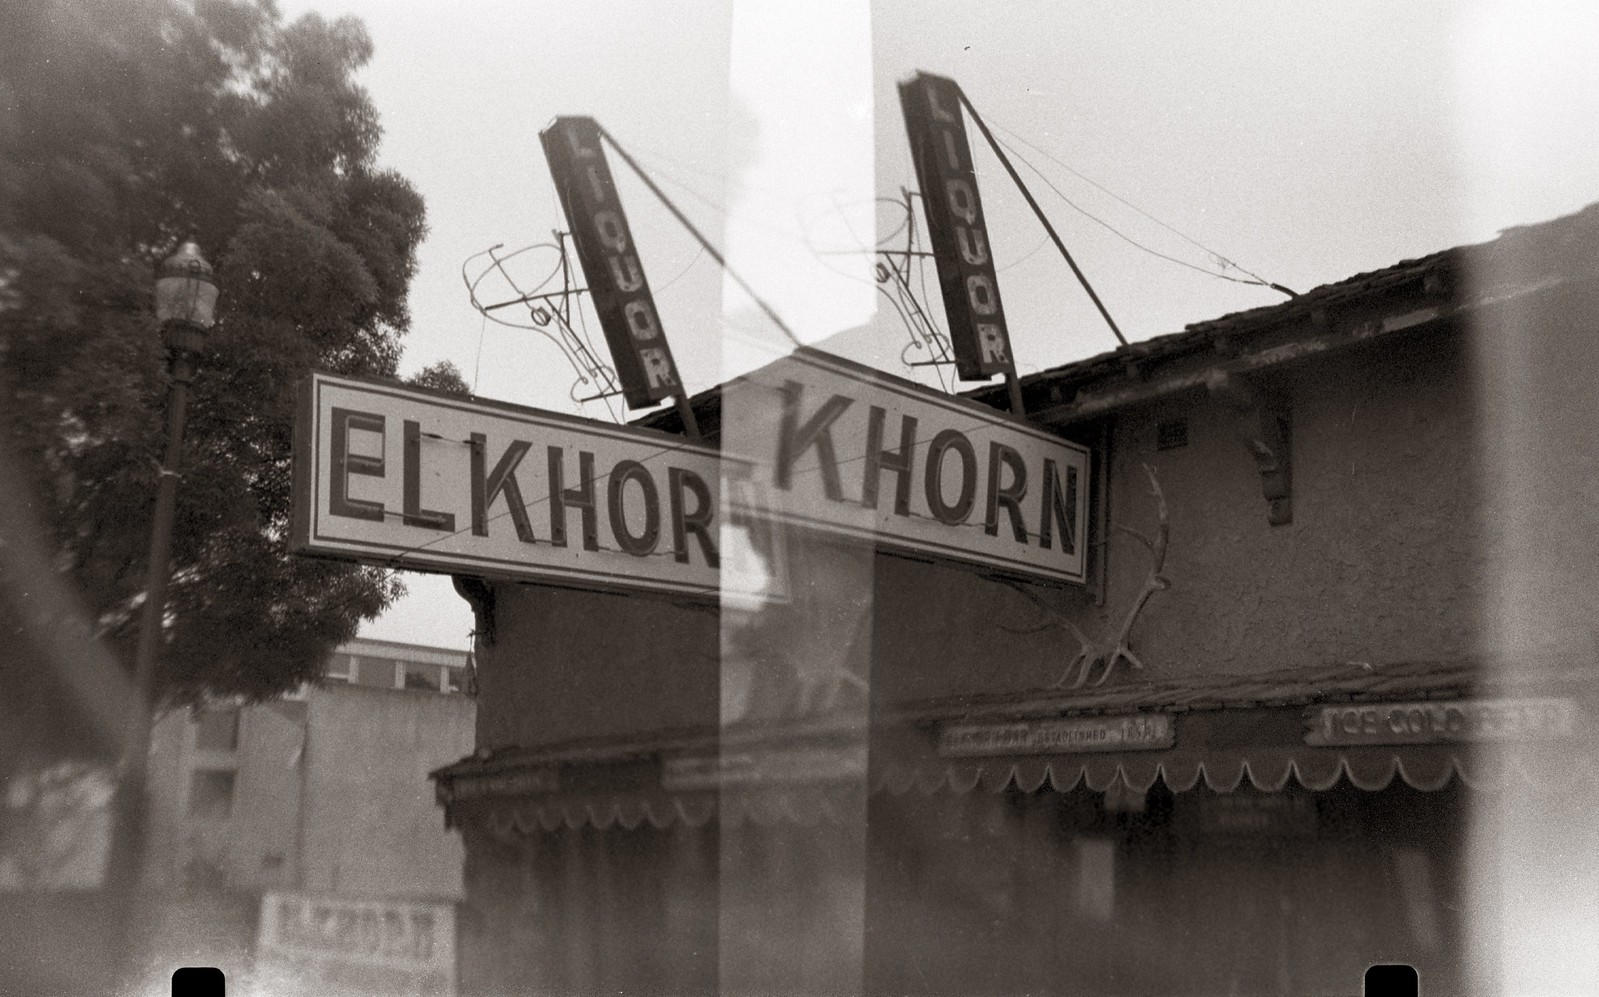 Elkhorn | by efo